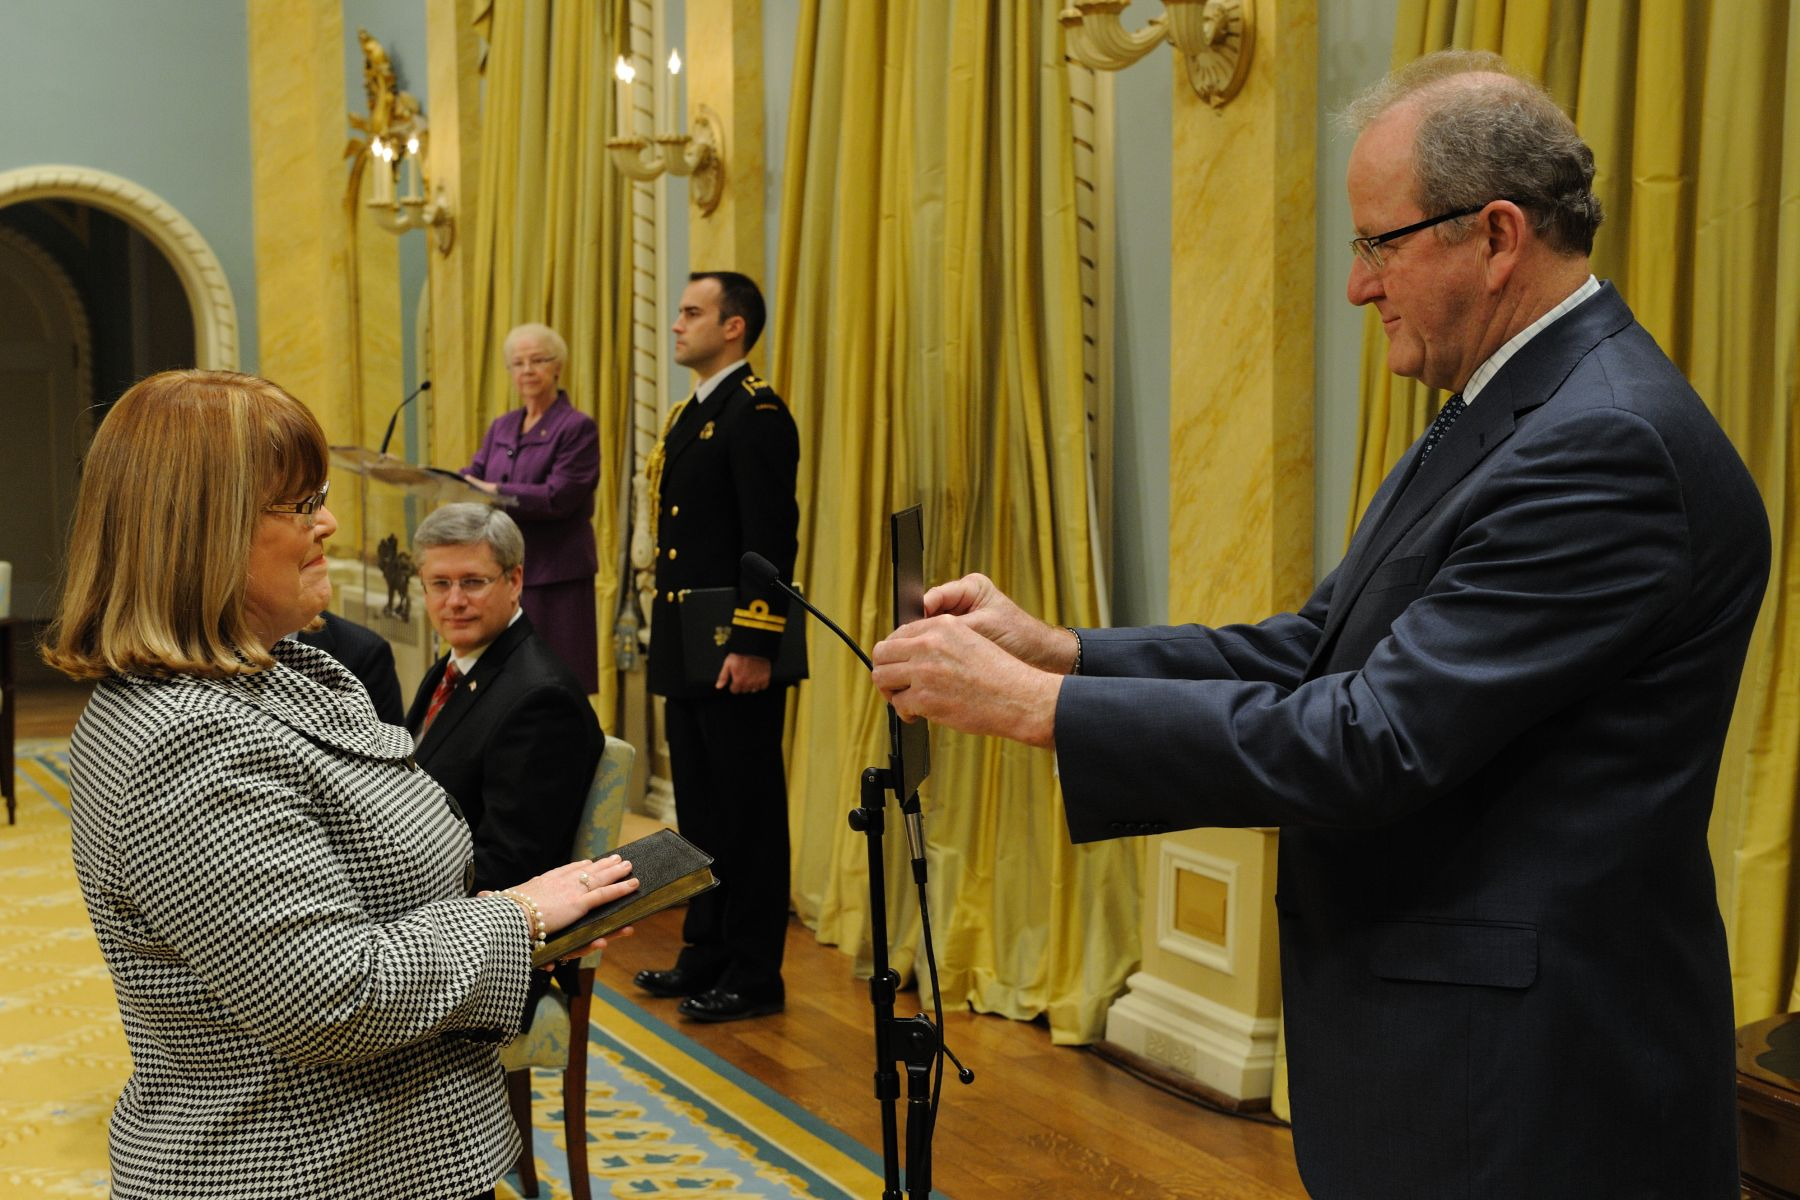 The Honourable Diane Ablonczy was sworn-in as Minister of State of Foreign Affairs (Americas and Consular Affairs).